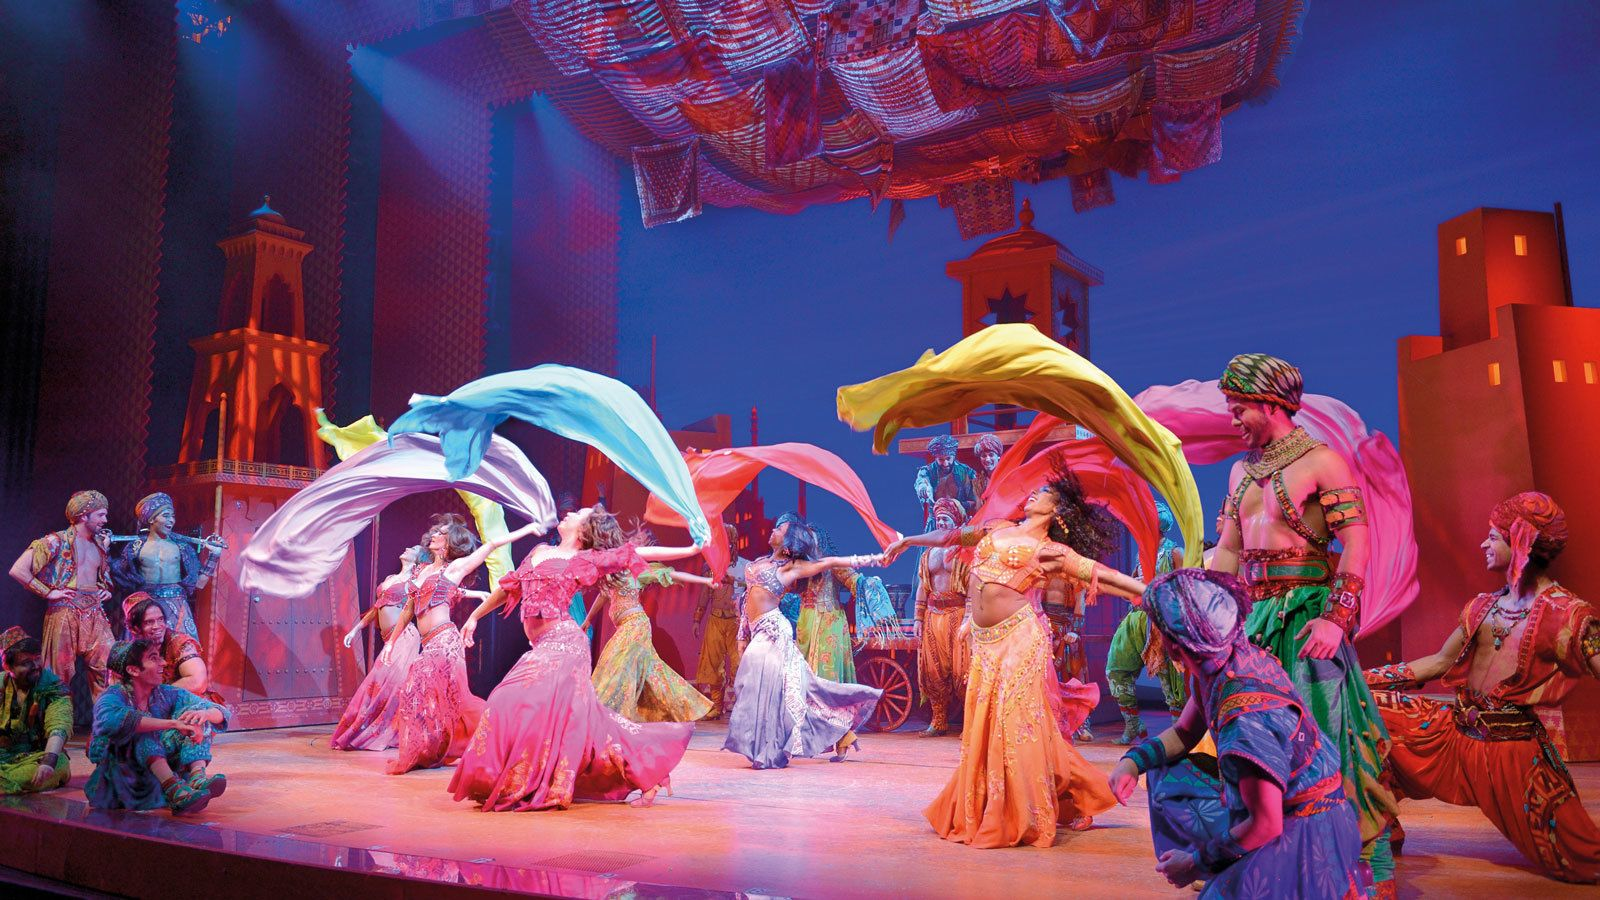 Performers during mid show of Aladdin at Prince Edward Theatre in London